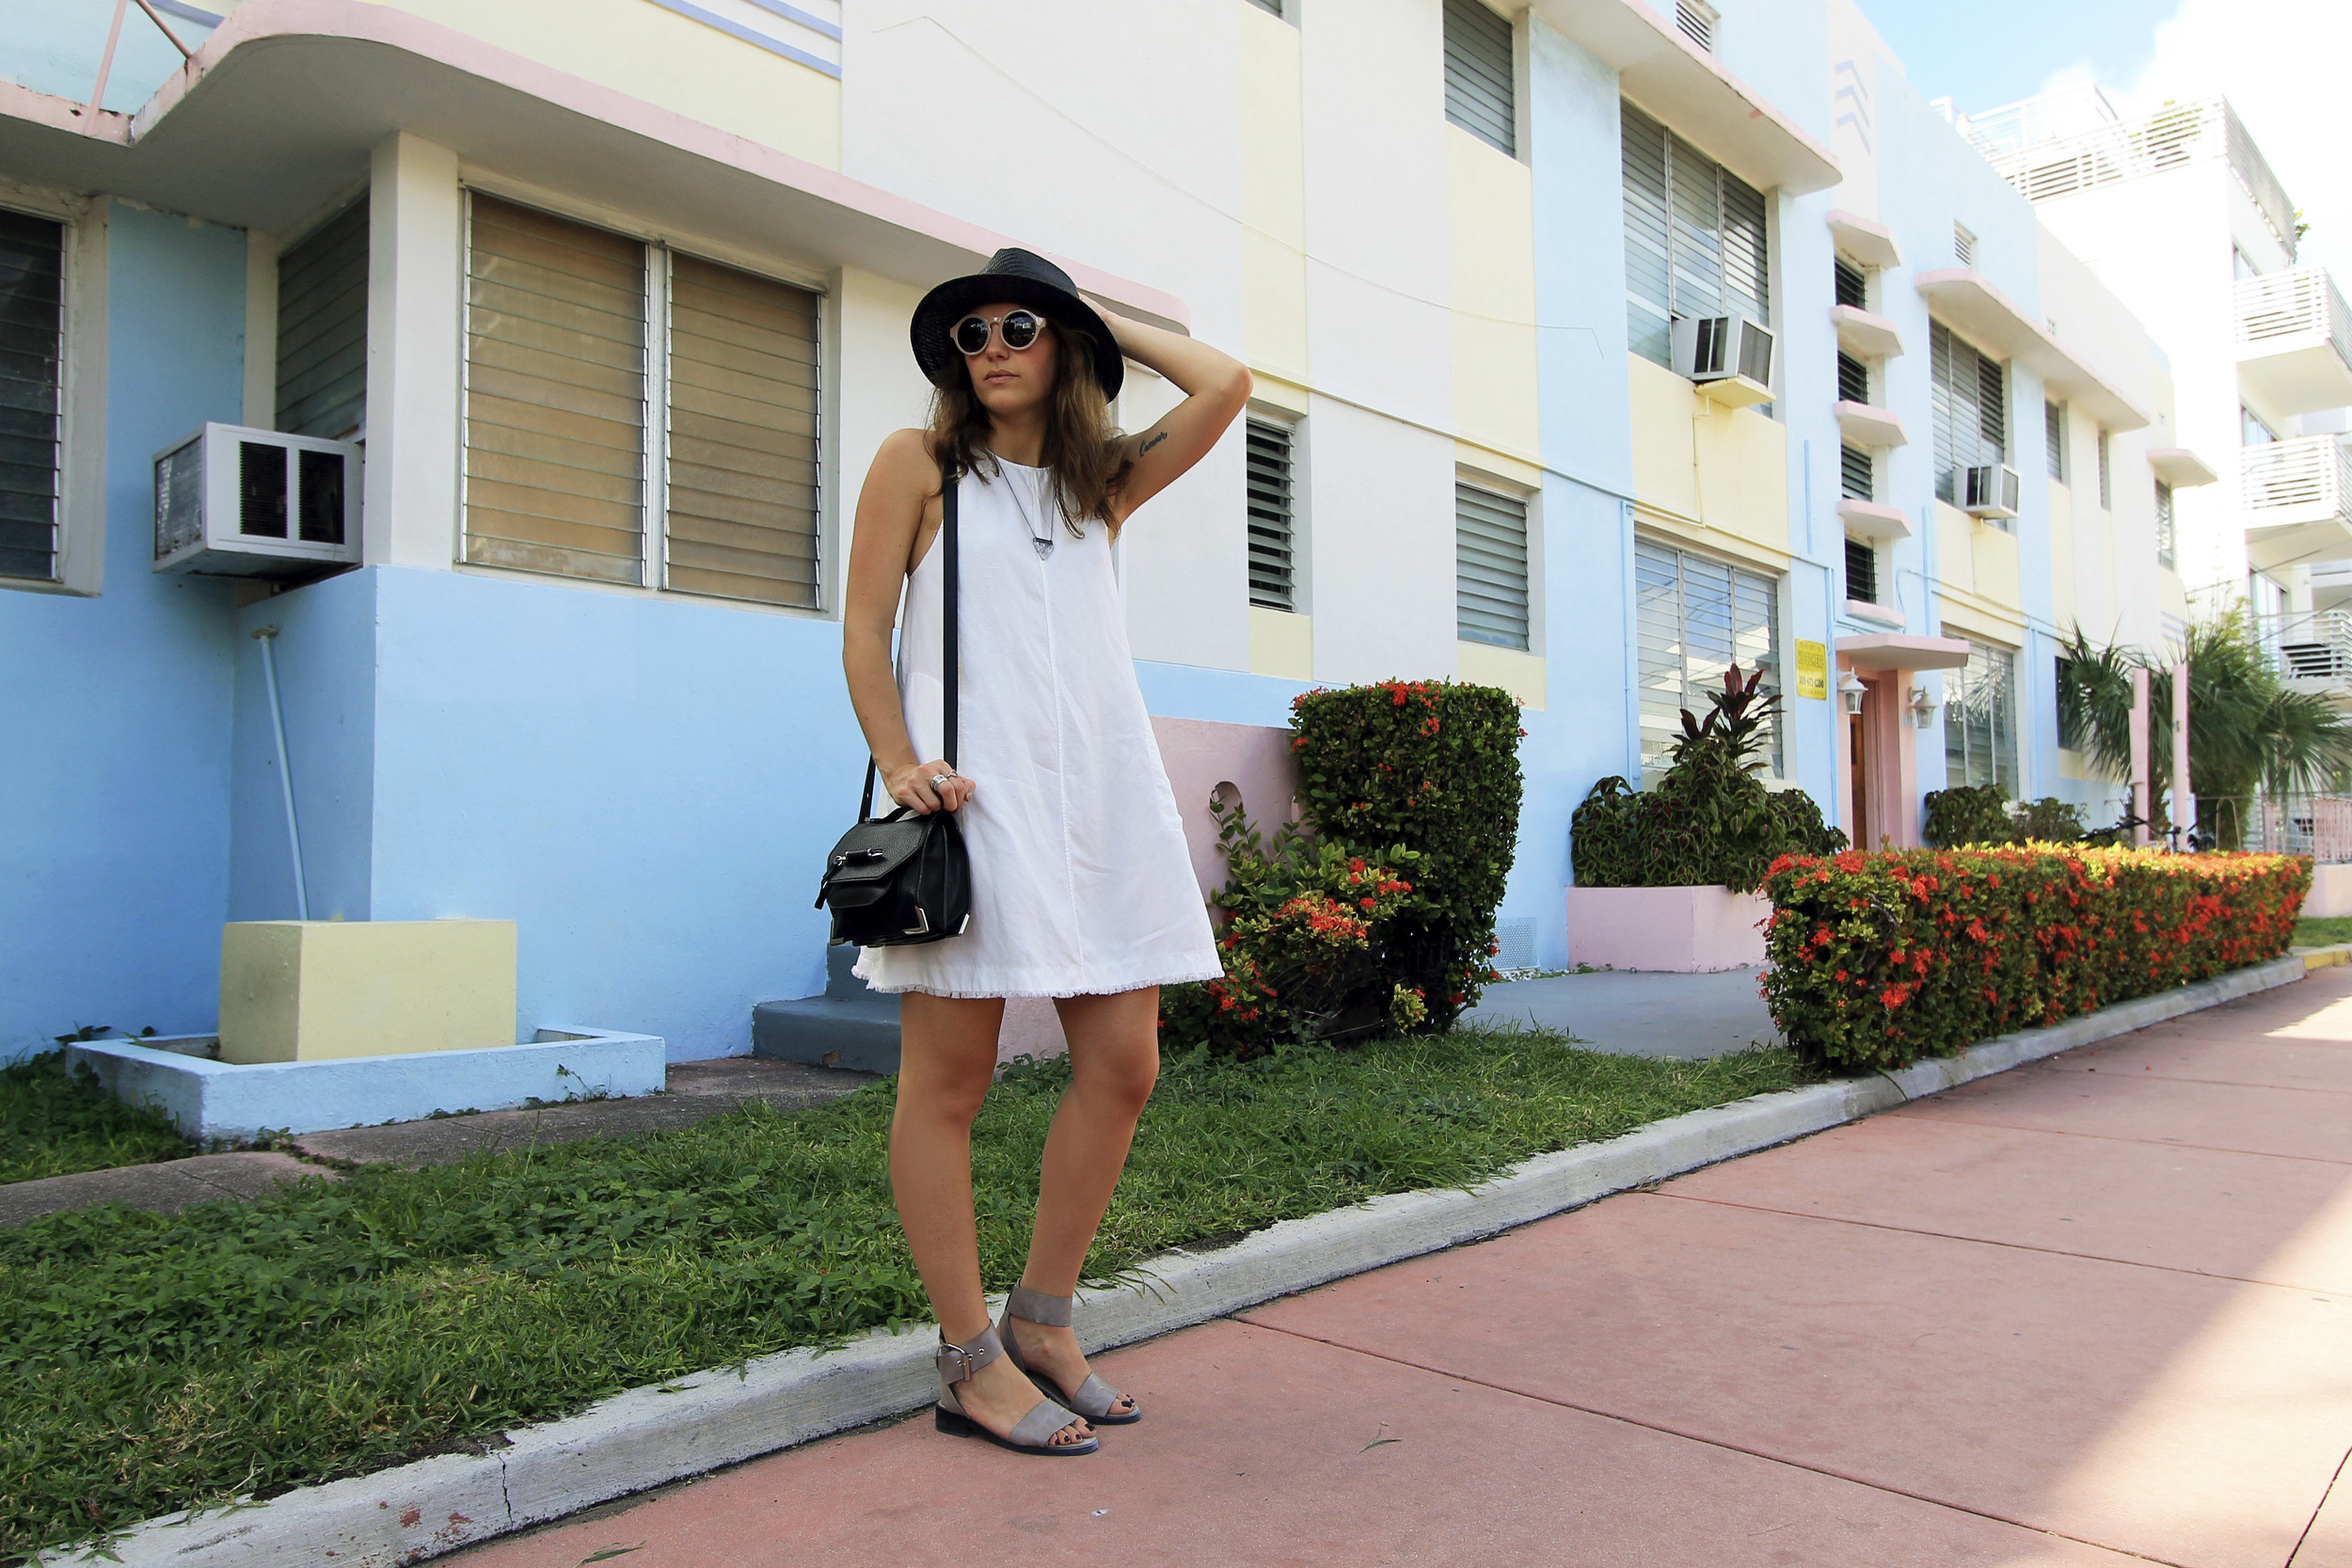 mackage ruby black arrow purse straw hat white linen dress grey two strap sandals.jpg